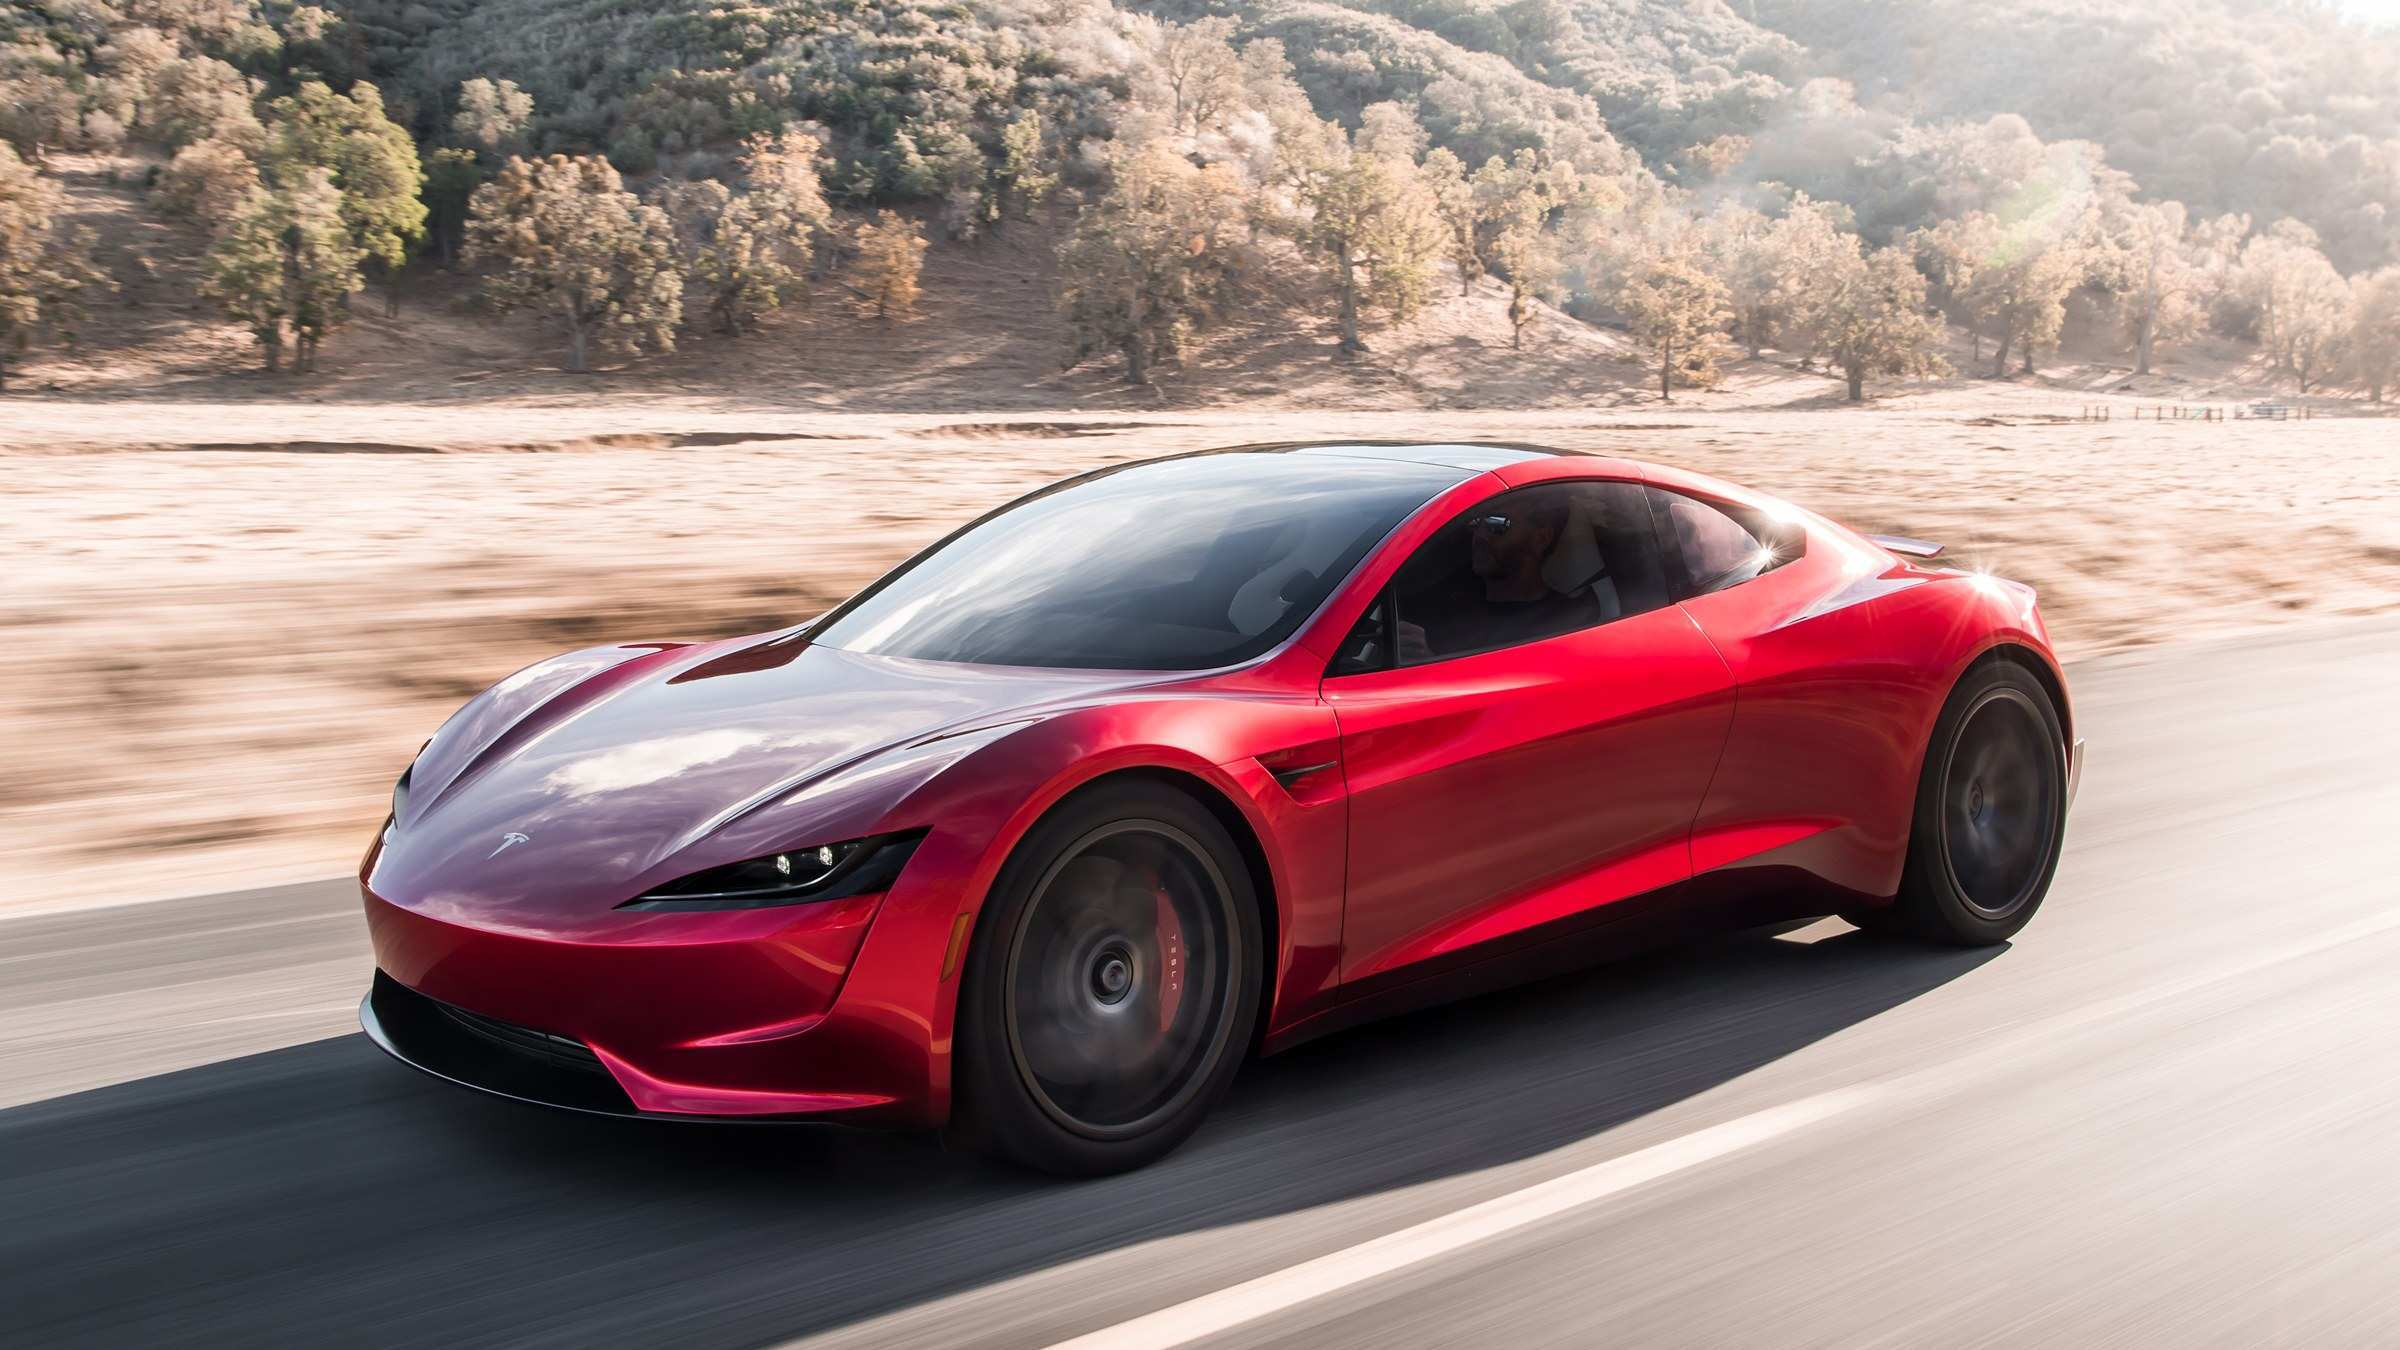 65 Great Tesla 2020 Vision Specs and Review by Tesla 2020 Vision